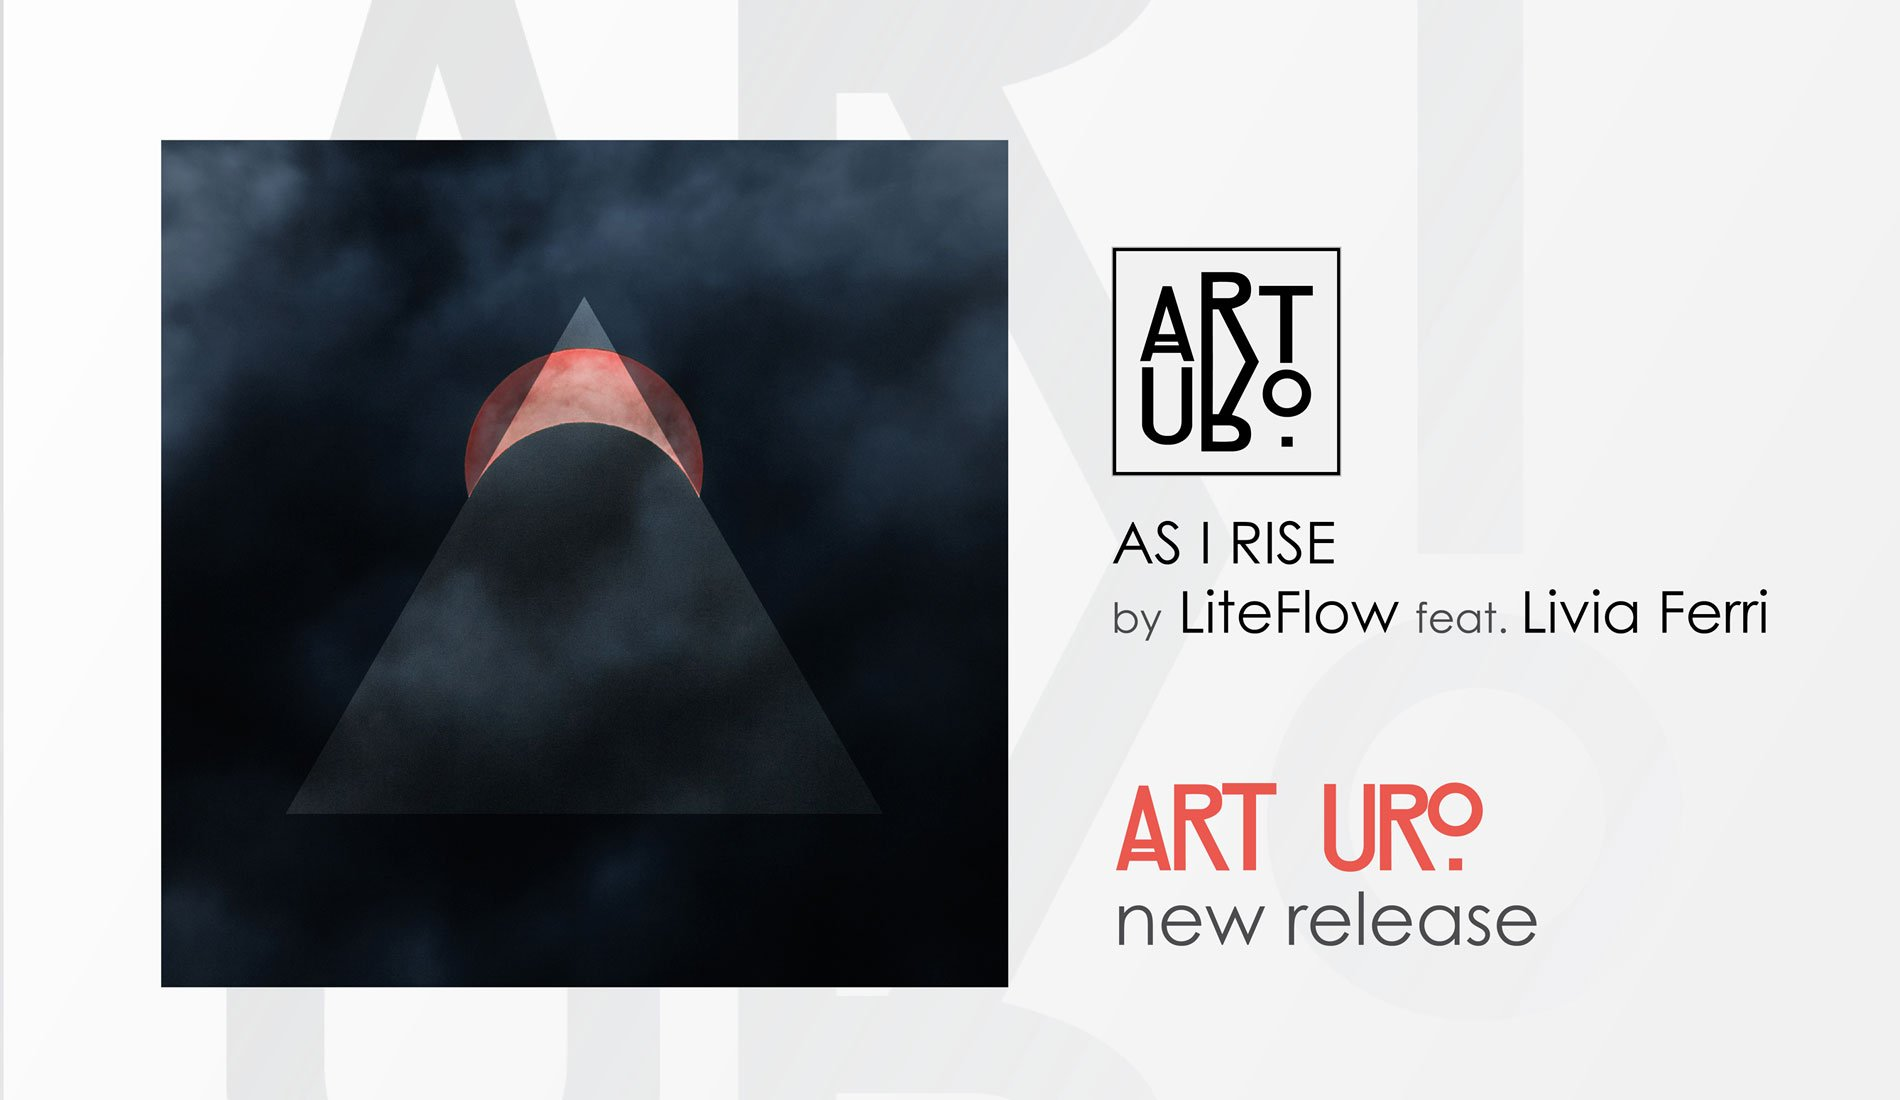 Arturo As Is Rise